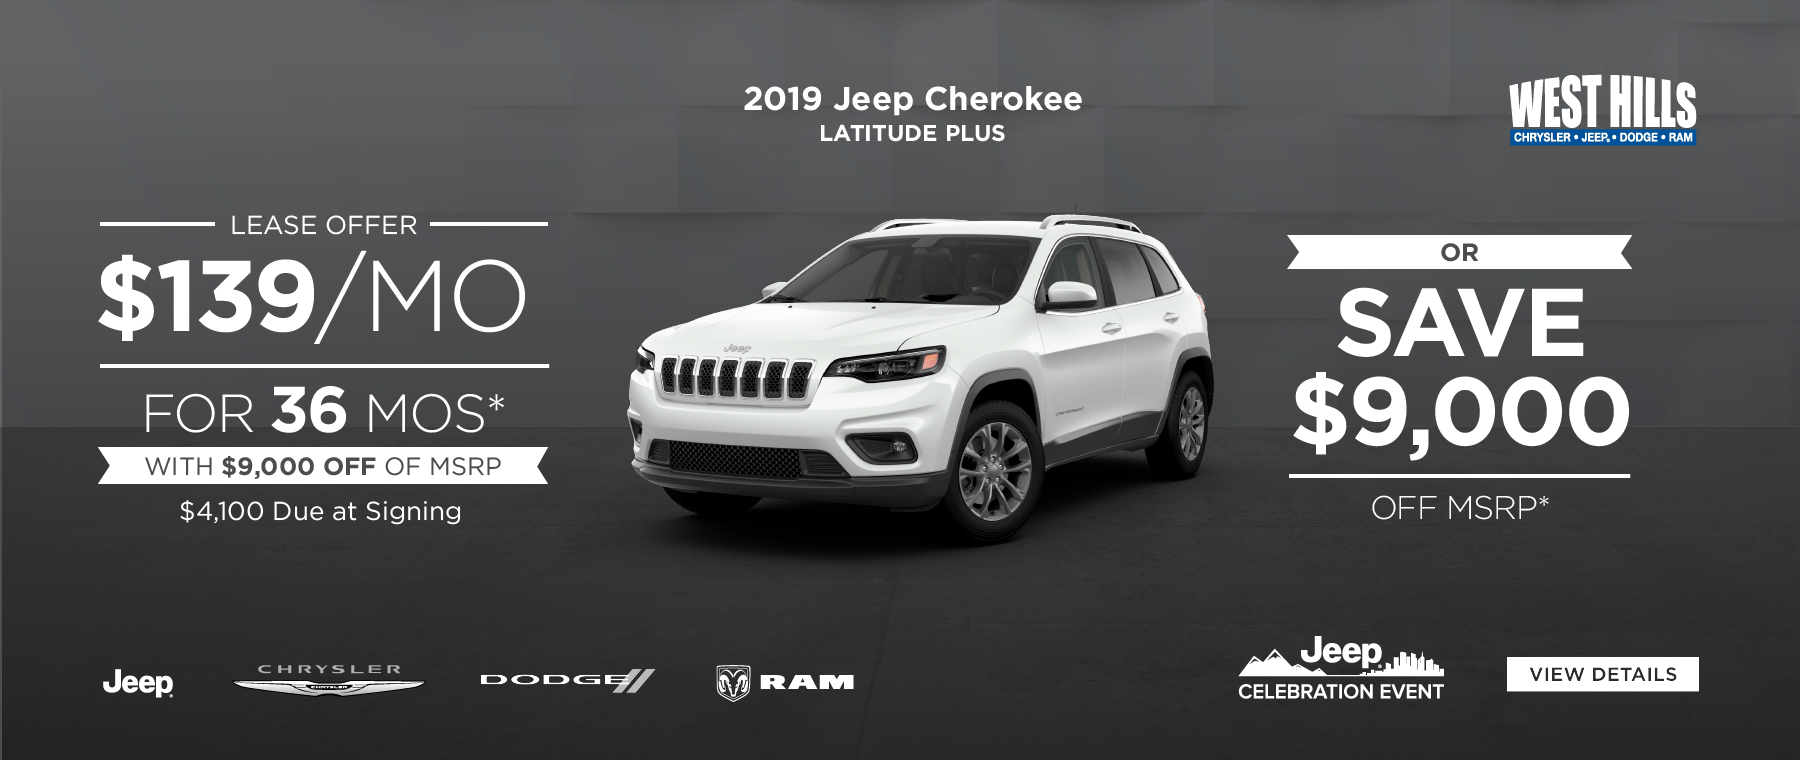 2019 Jeep Cherokee Latitude Plus  $139/mo. for 36 mos.* with $9,000 off of MSRP $4,100 Due at Signing OR  SAVE $9,000 OFF MSRP *Offer valid on 2019 Jeep Cherokee Latitude Plus. $139/mo. for 36 mos., with $9,000 off of MSRP. $4,100 due at signing with $0 security deposit. OR $9,000 OFF of MSRP. Rebates based on approval of program 70CK1, 44CKB3, WECKA, 41CK53. Based on MSRP example $31,635. 36 months at $13.89 per $1,000 financed. VIN: 1C4RJFAG1KC548013. Subject to credit approval. Not all lessees will qualify for lowest payment through participating lender. Option to purchase at lease end. Excludes state and local taxes, tags, registration and title, insurance and dealer charges.  A negotiable dealer documentary service fee of up to $150 may be added to the sale price or capitalized cost. Lessee pays for excess mileage, wear and tear. Offer expires:  5/31/2019.